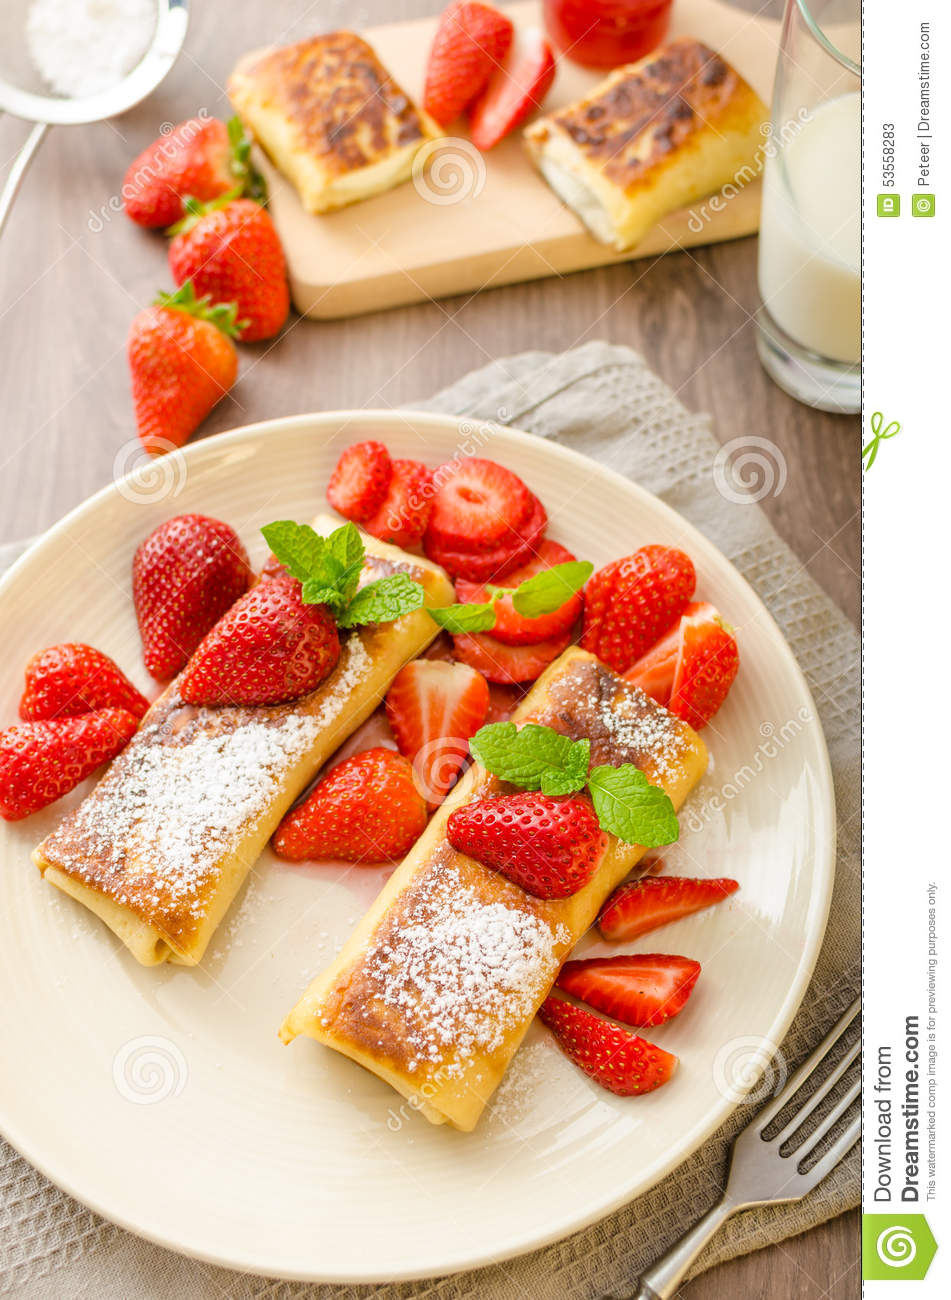 Delicious Cheese Blintz On Green Plate Royalty Free Stock